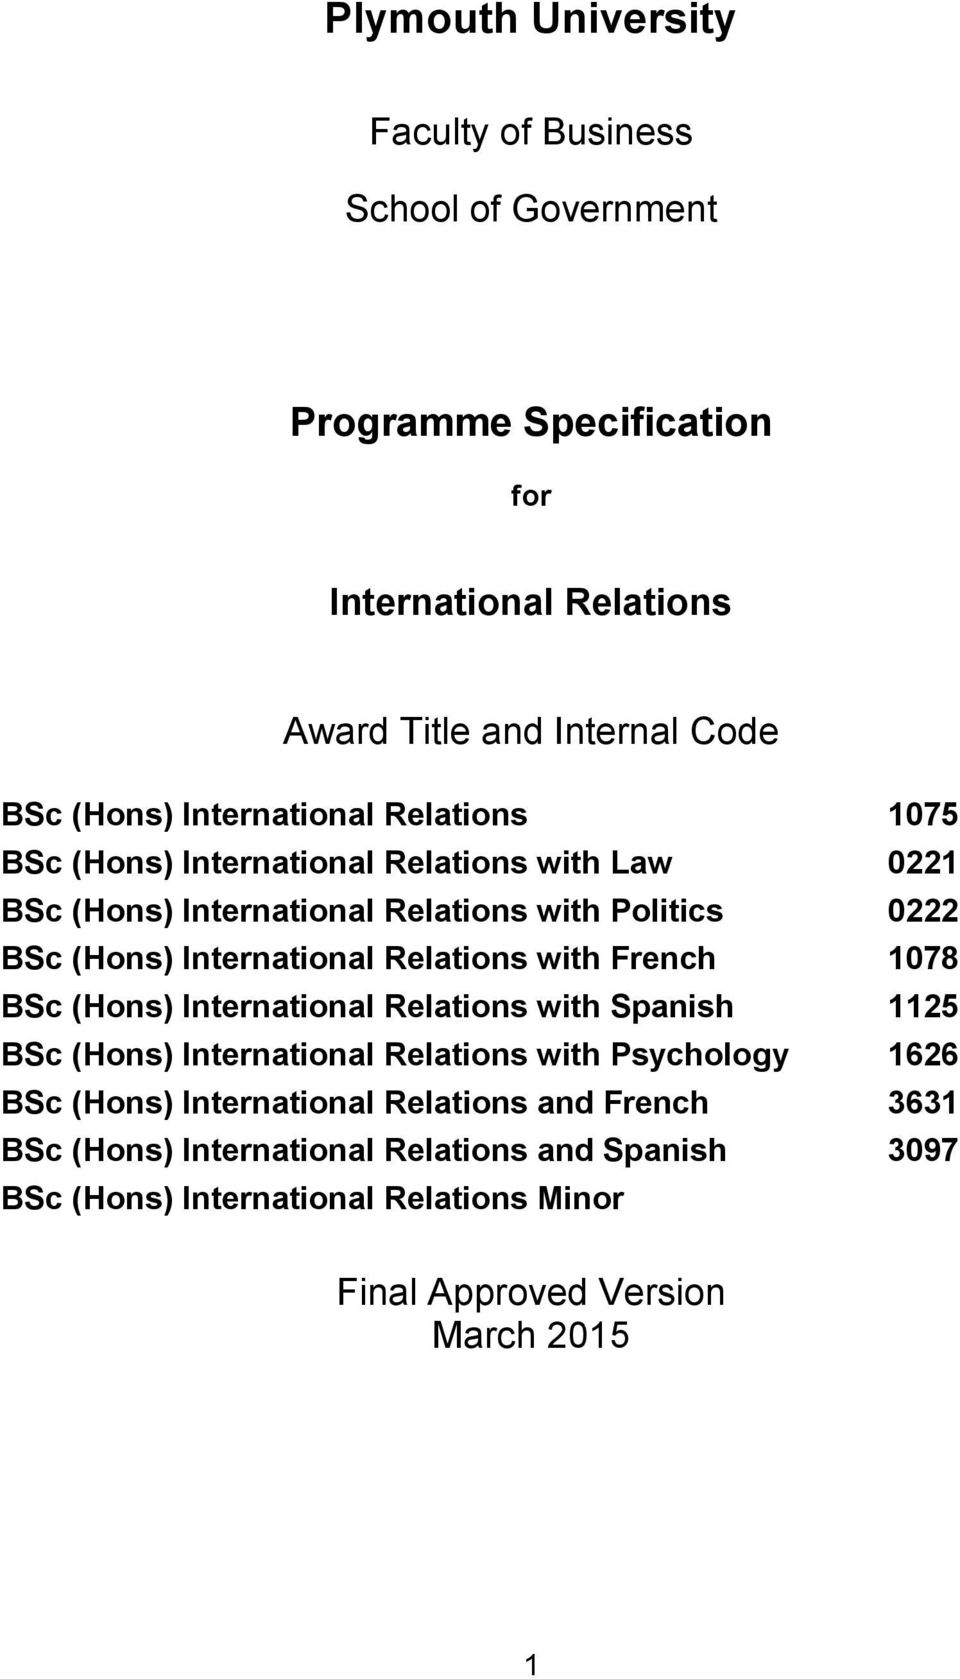 (Hons) Relations with French 1078 BSc (Hons) Relations with Spanish 1125 BSc (Hons) Relations with Psychology 1626 BSc